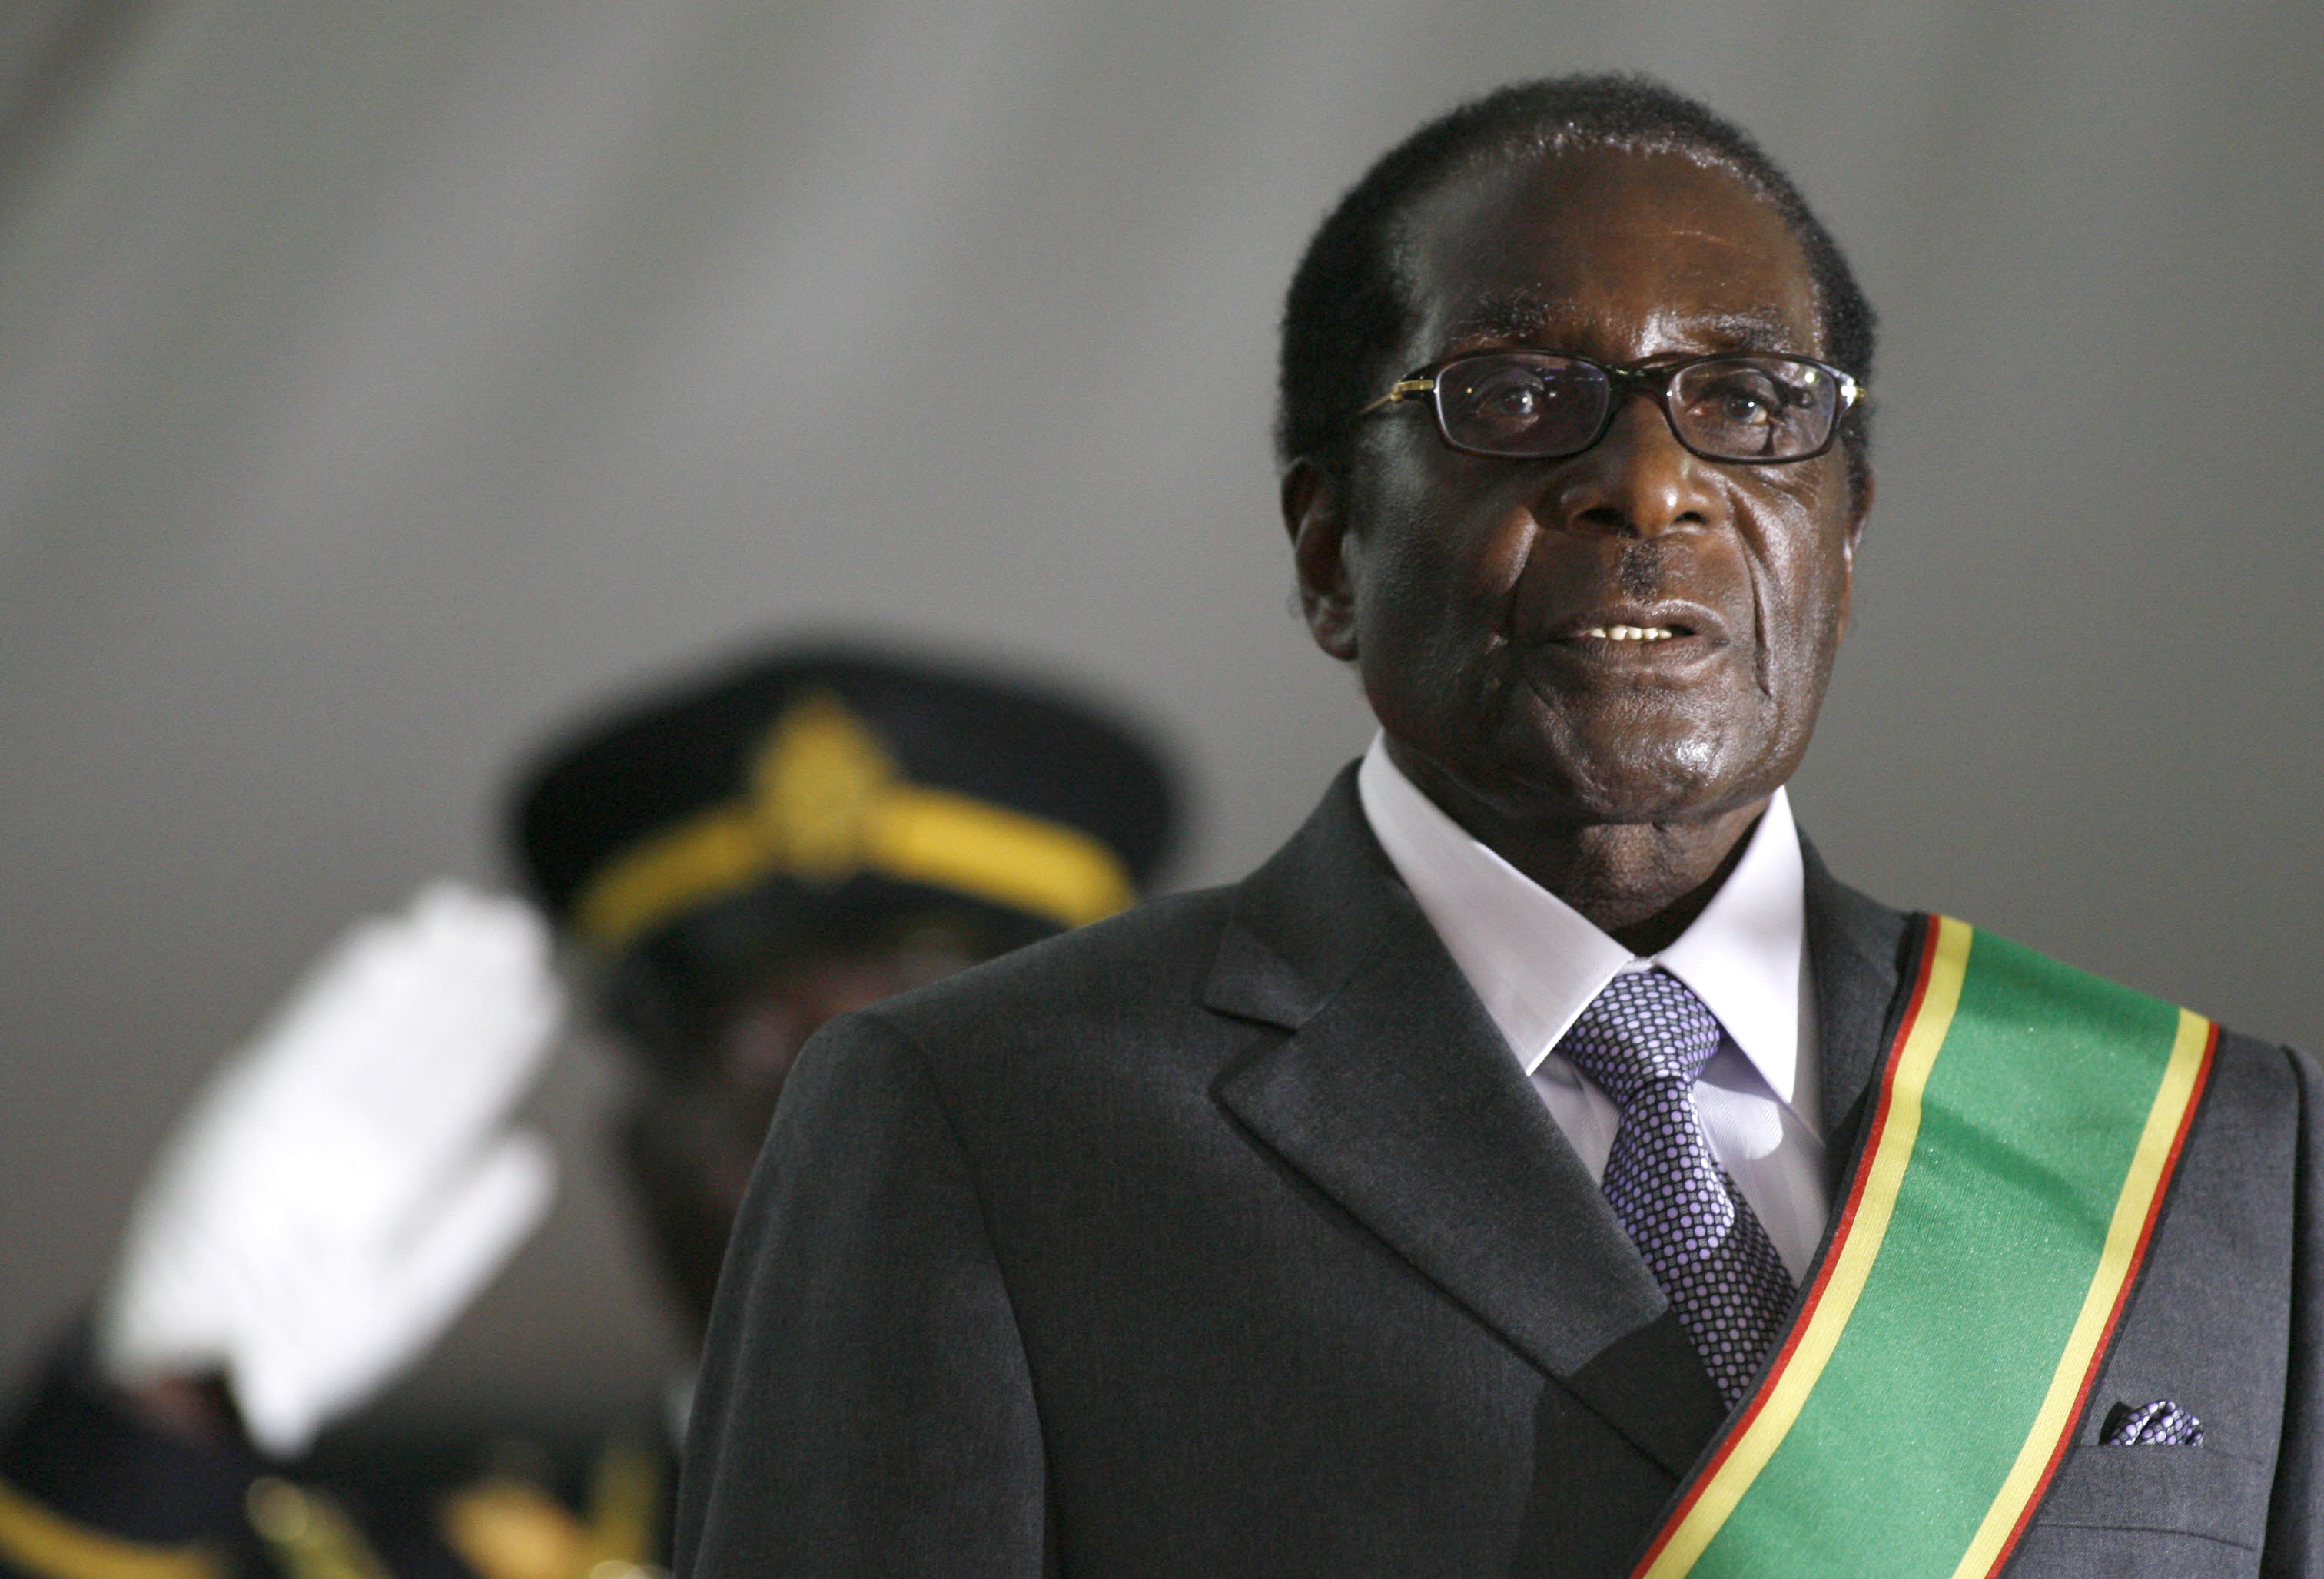 Zimbabwean President Robert Mugabe is hastily sworn in for a sixth term in office in Harare, on June 29, 2008 after being declared the winner of a one-man election.